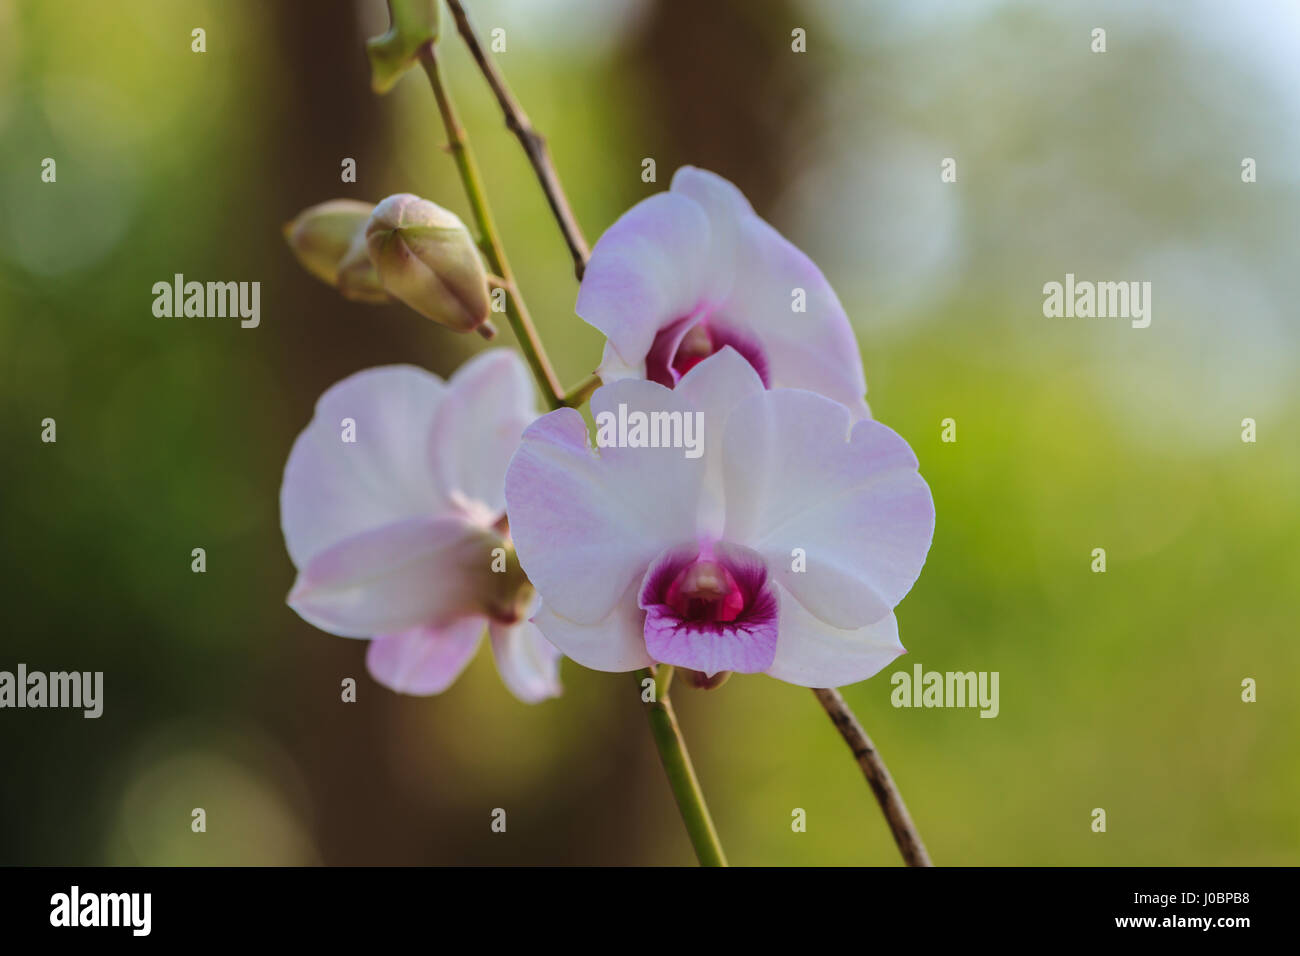 Streaked orchid flowers in garden beautiful orchid flowers stock streaked orchid flowers in garden beautiful orchid flowers izmirmasajfo